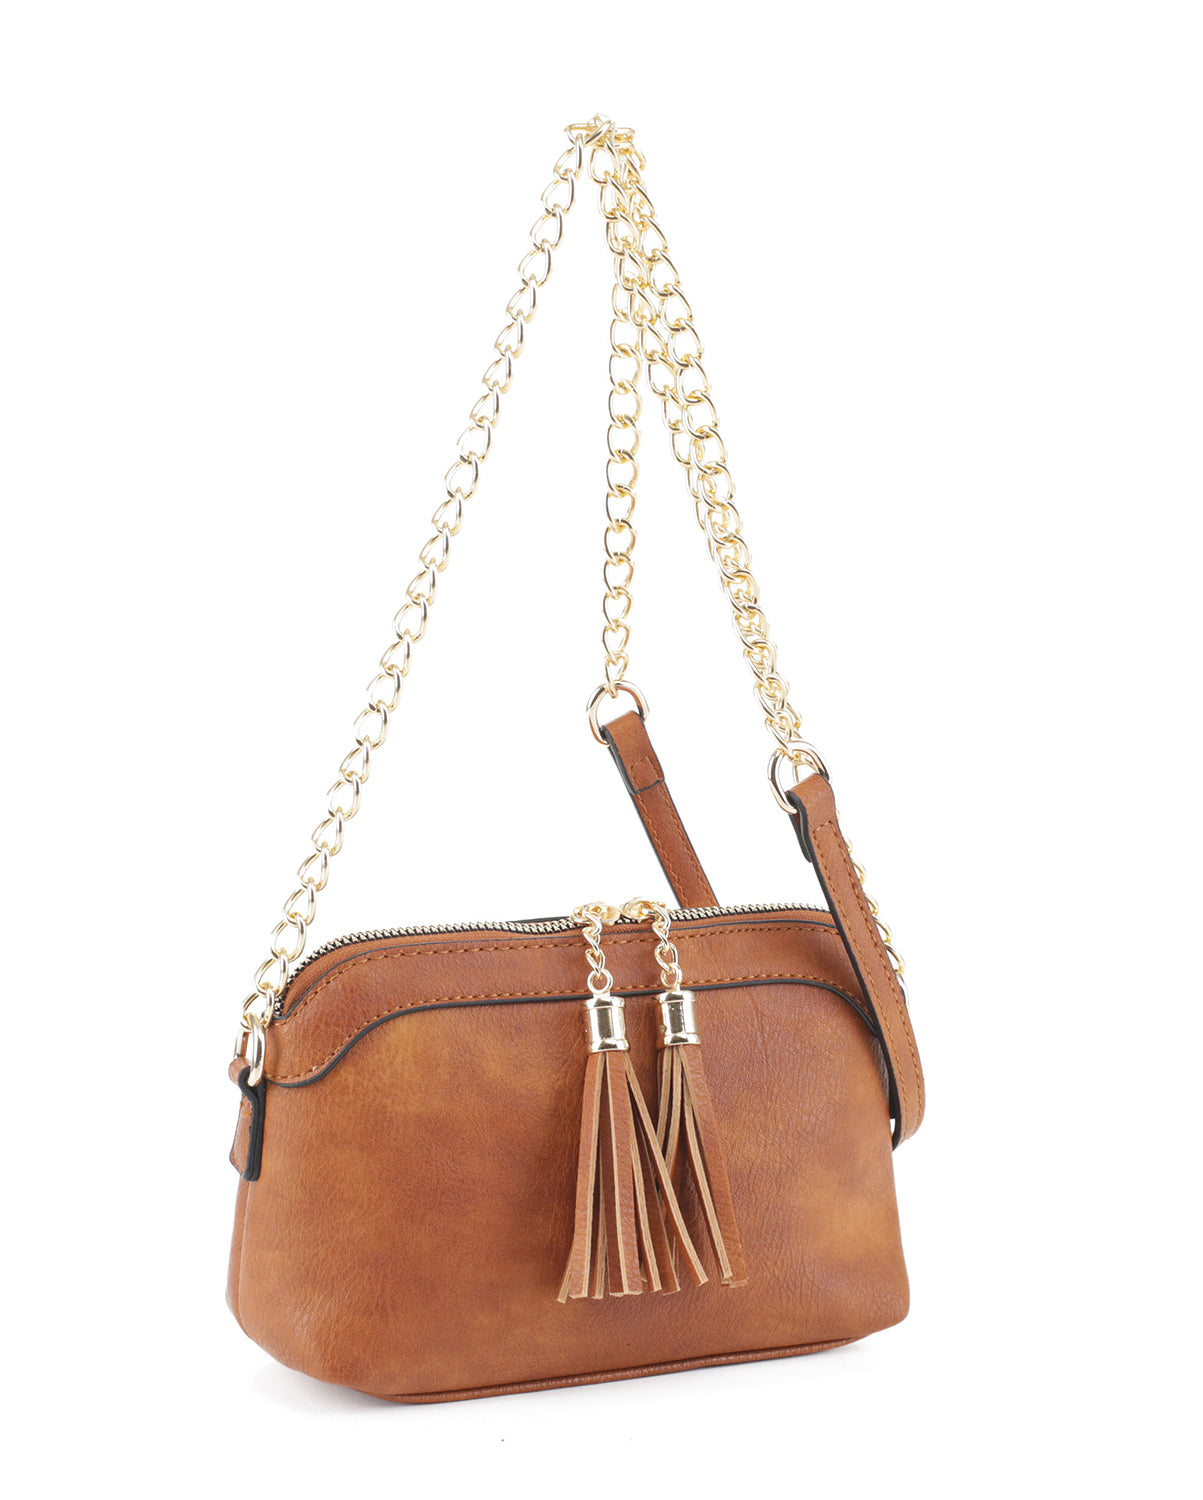 Double Tassel Cross Body Bag